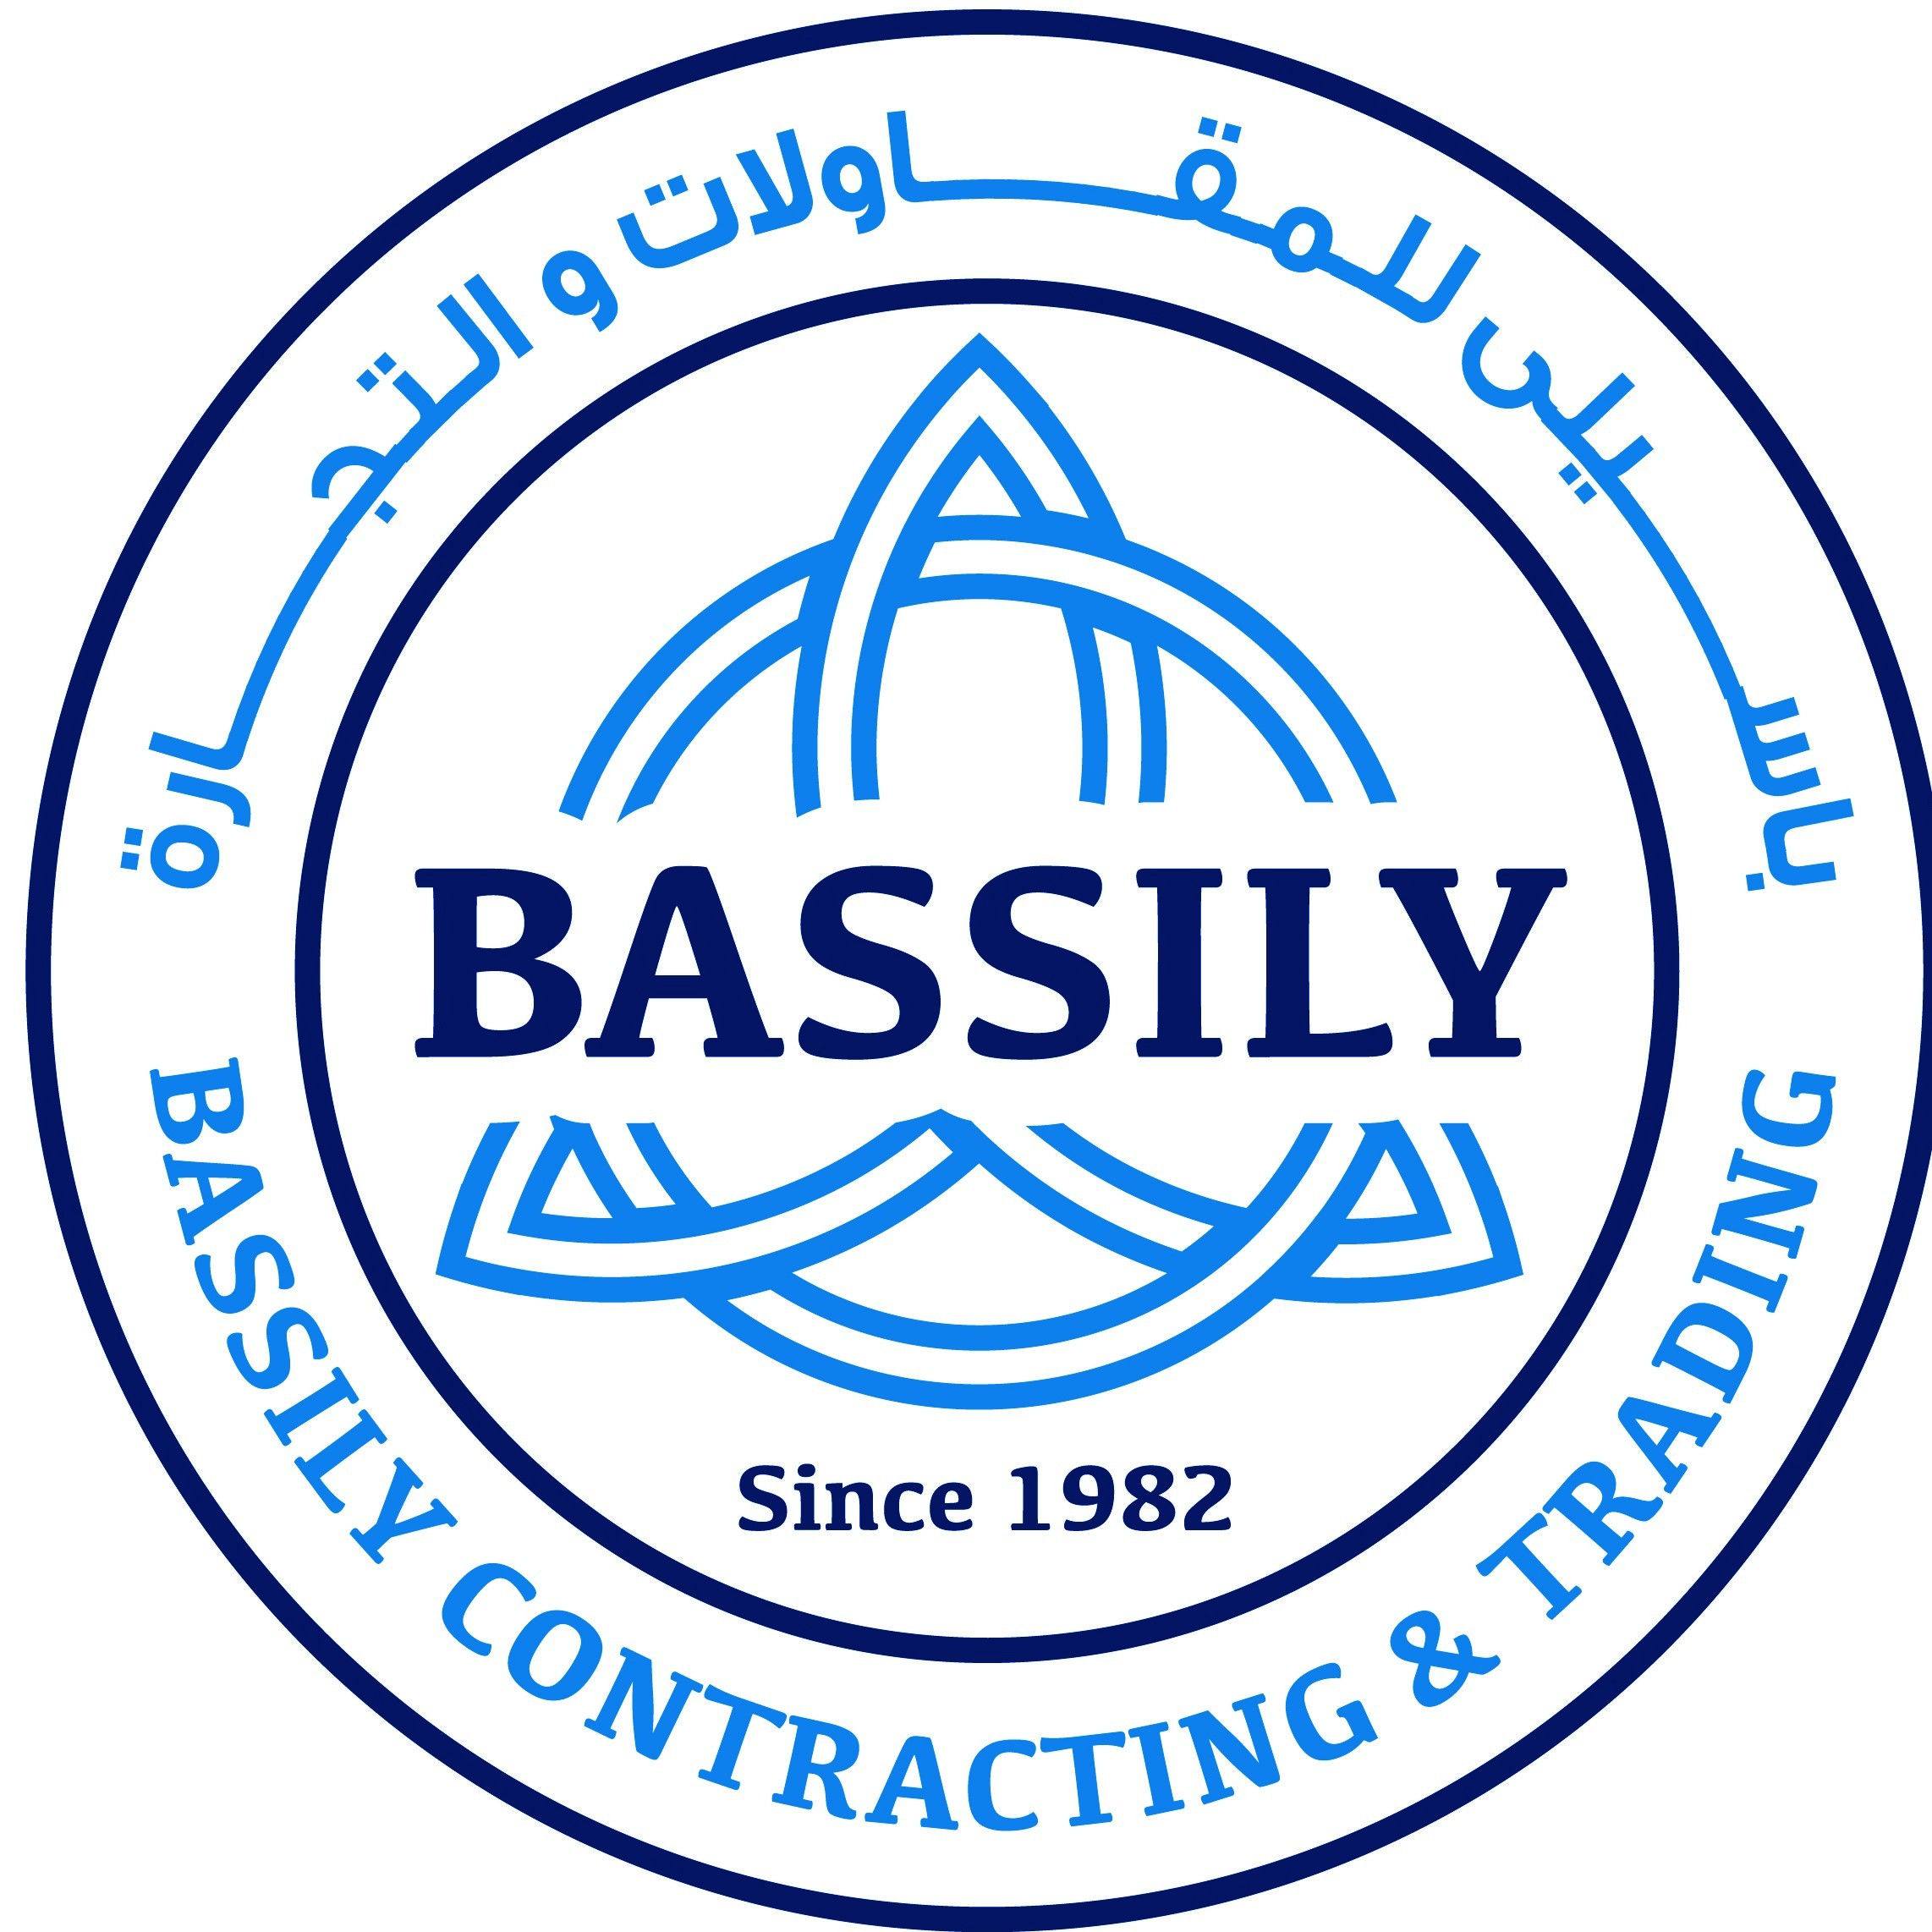 BASSILY CONTRACTING AND TRADING